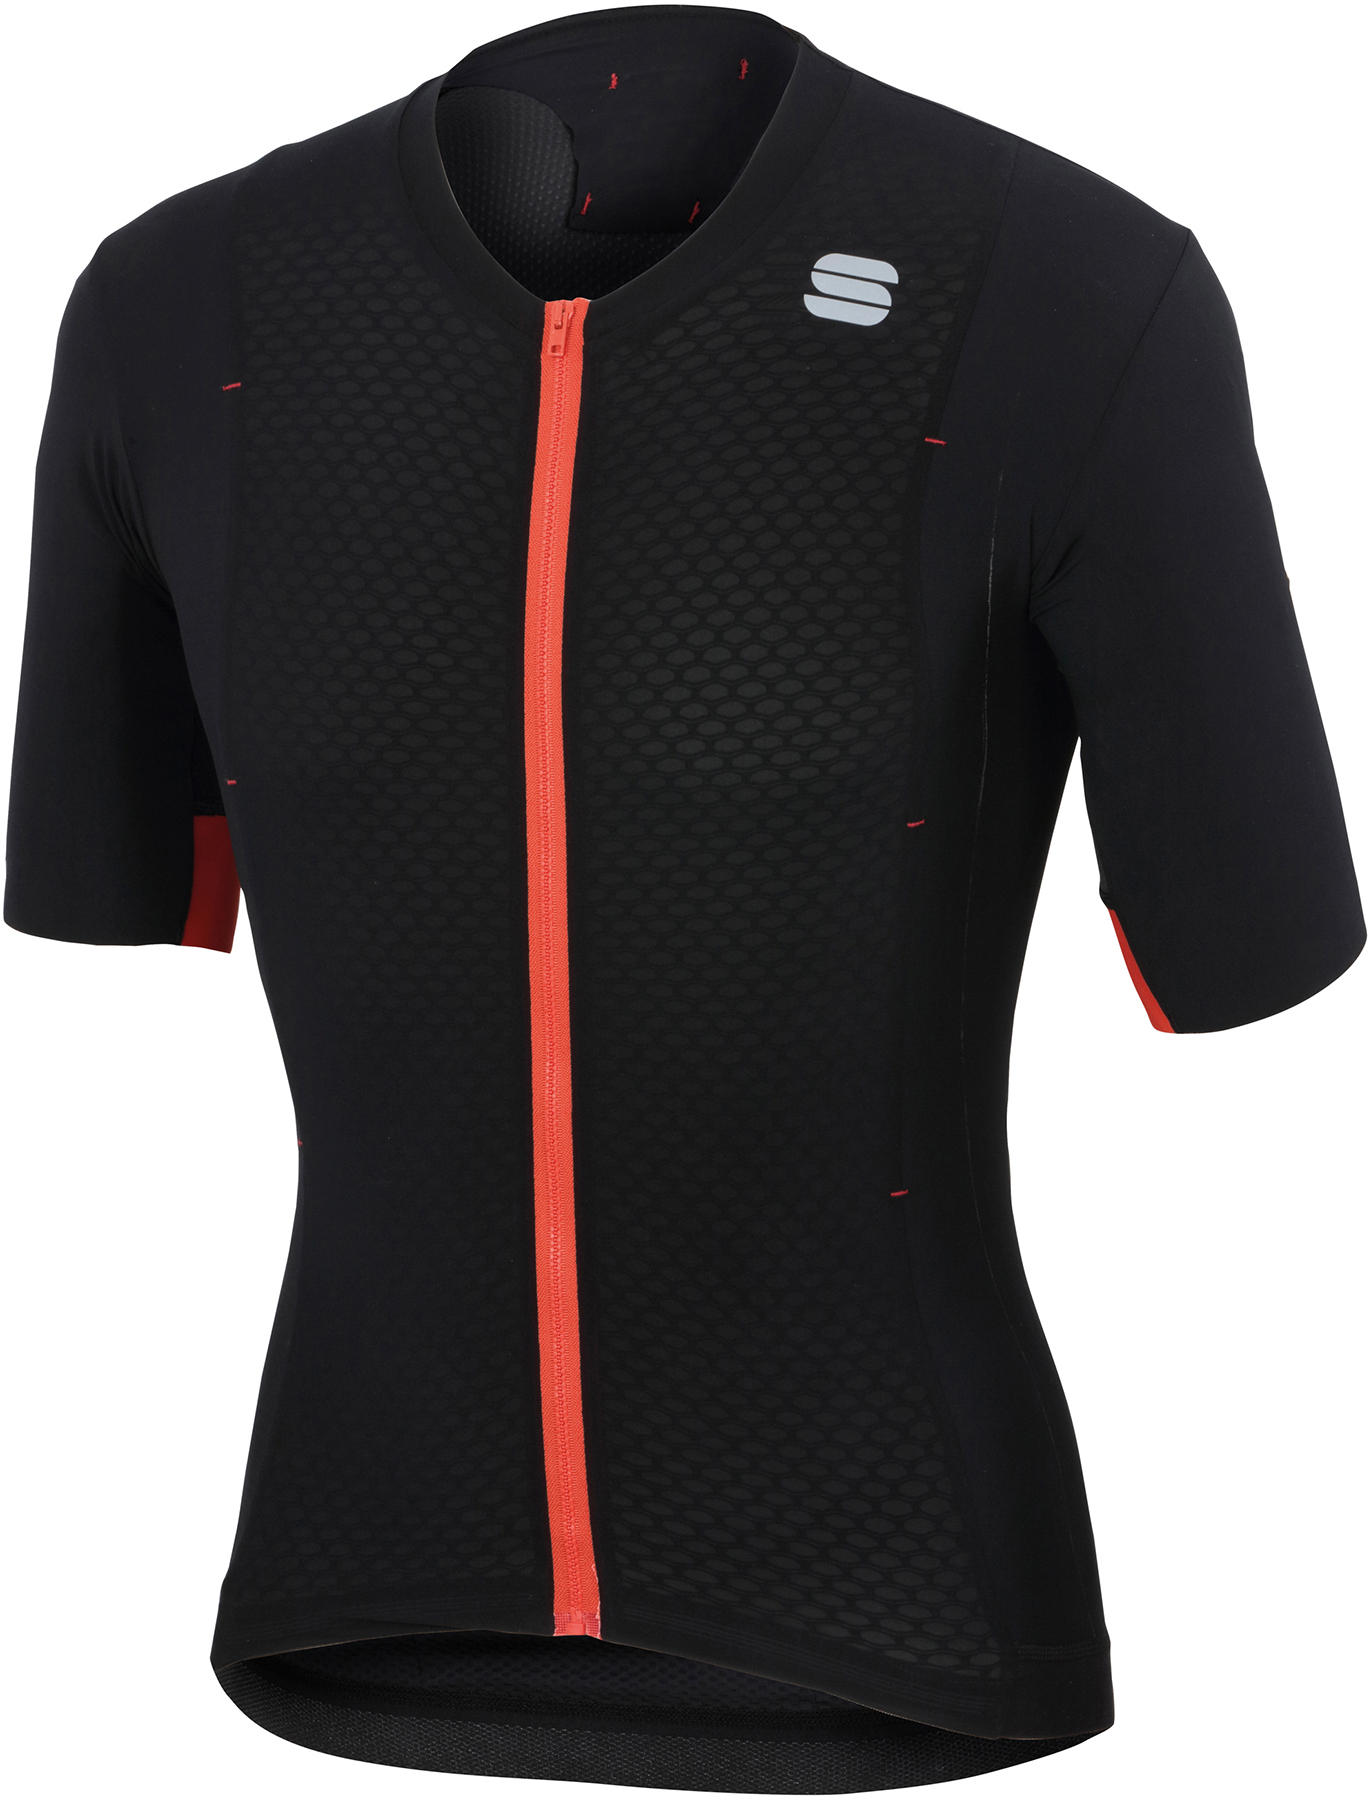 Sportful Celsius Jersey | Jerseys